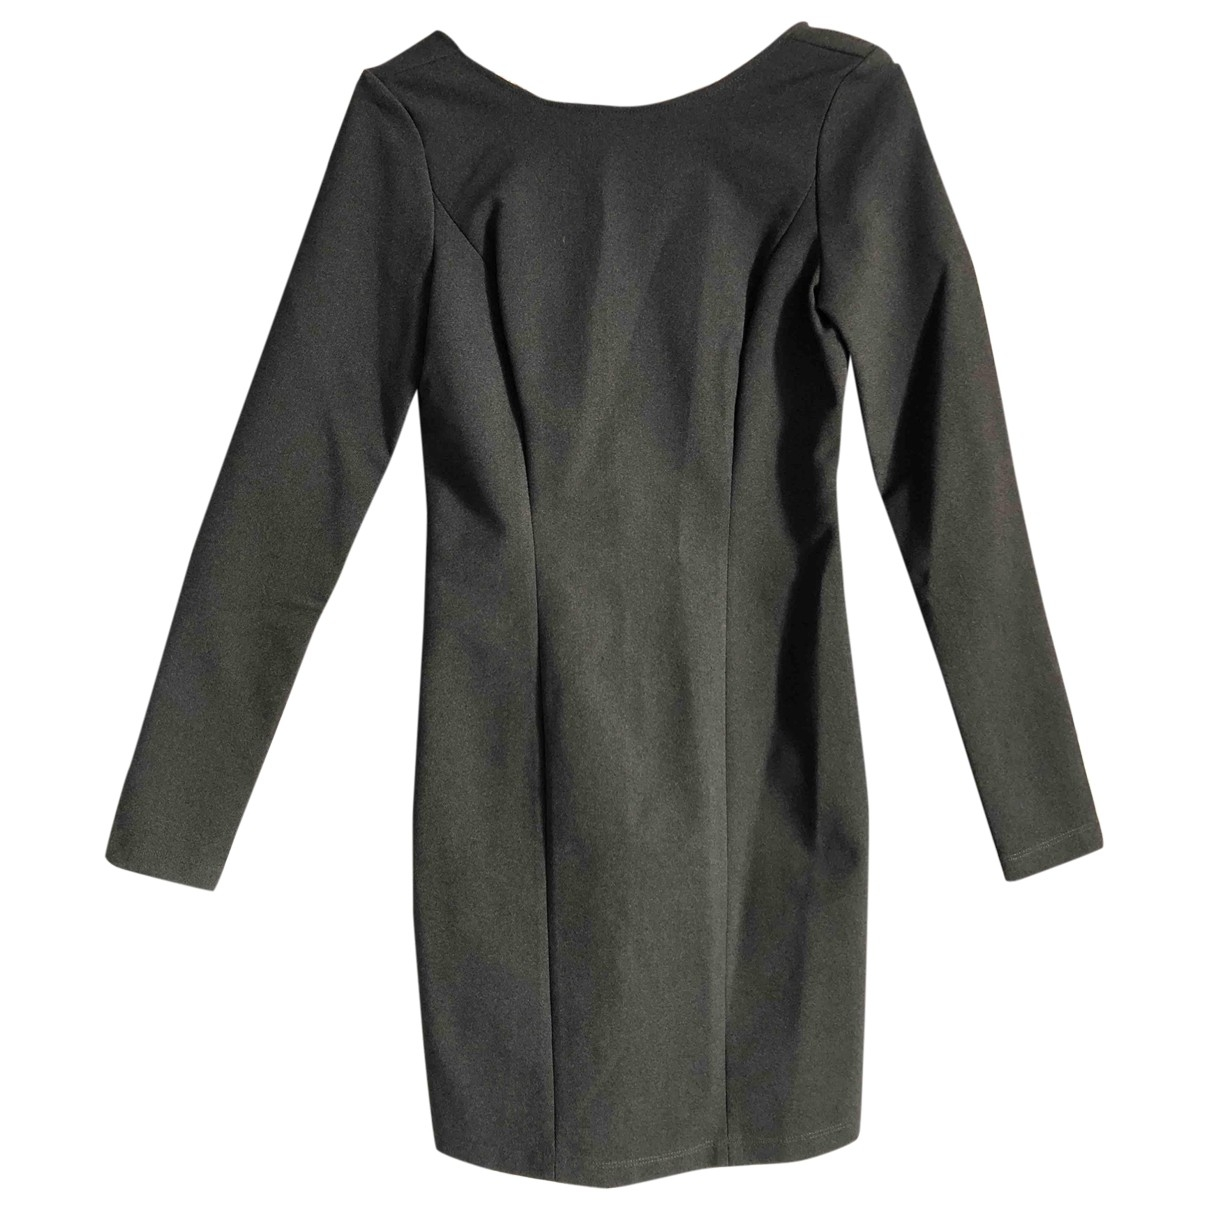 Theyskens Theory - Robe   pour femme en coton - gris